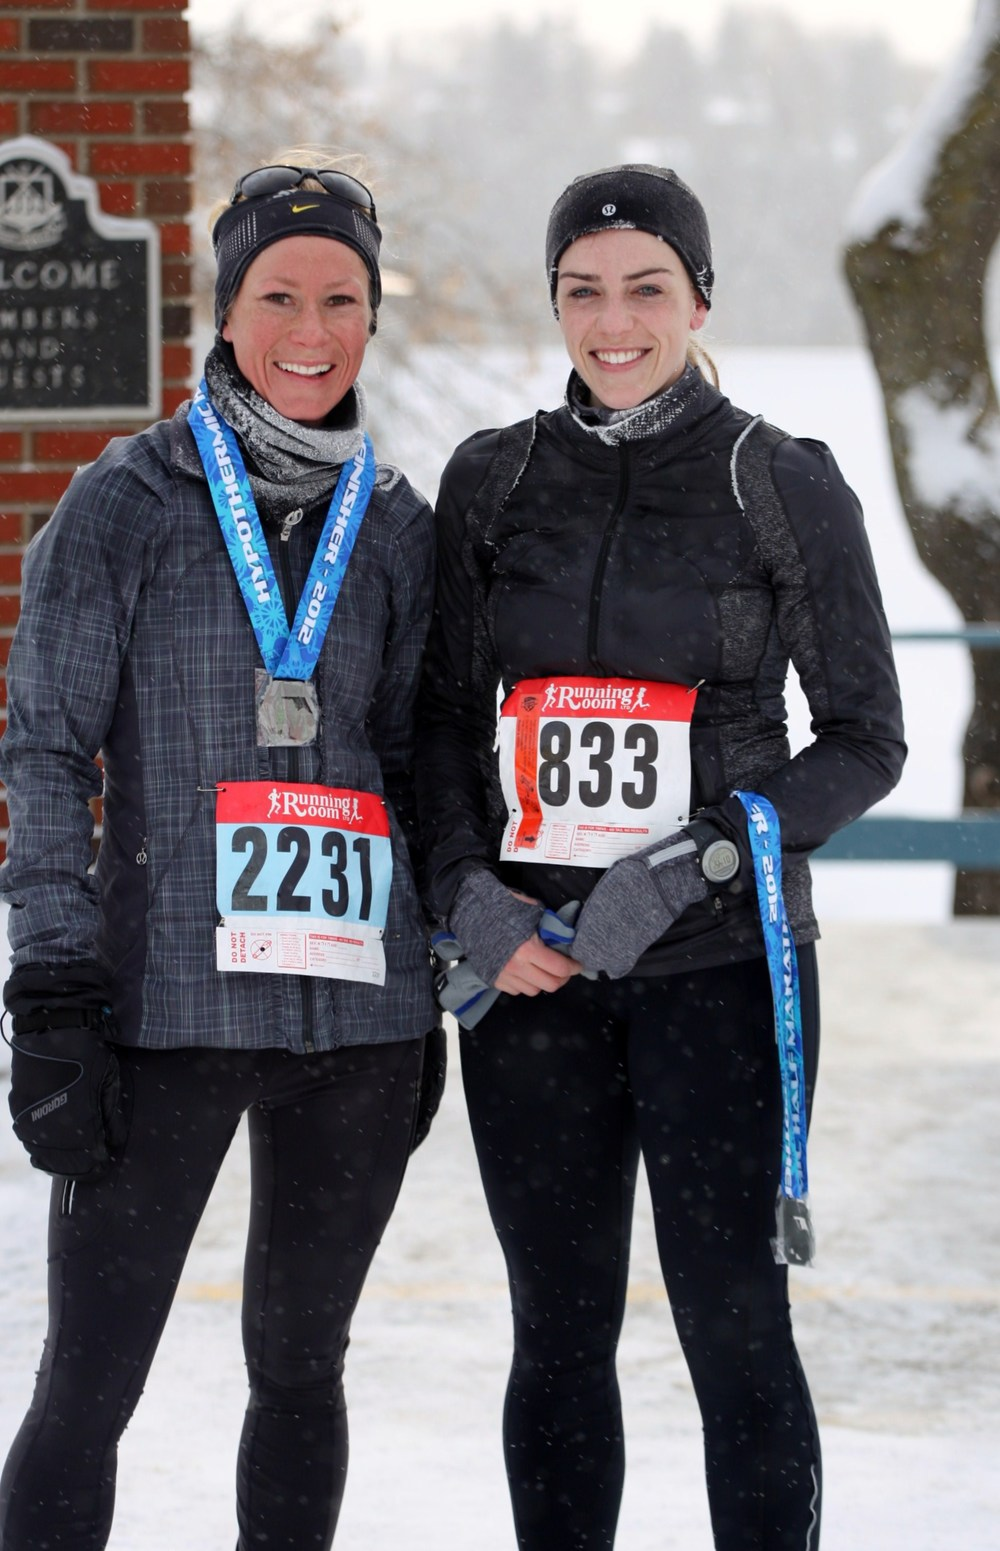 This photo was snapped after running the Edmonton Hypothermic Half Marathon in February 2012. It was super cold and snowy. The winter elements added about 10 minutes to my race time. On the left, my running friend Alissa, and me on the right.